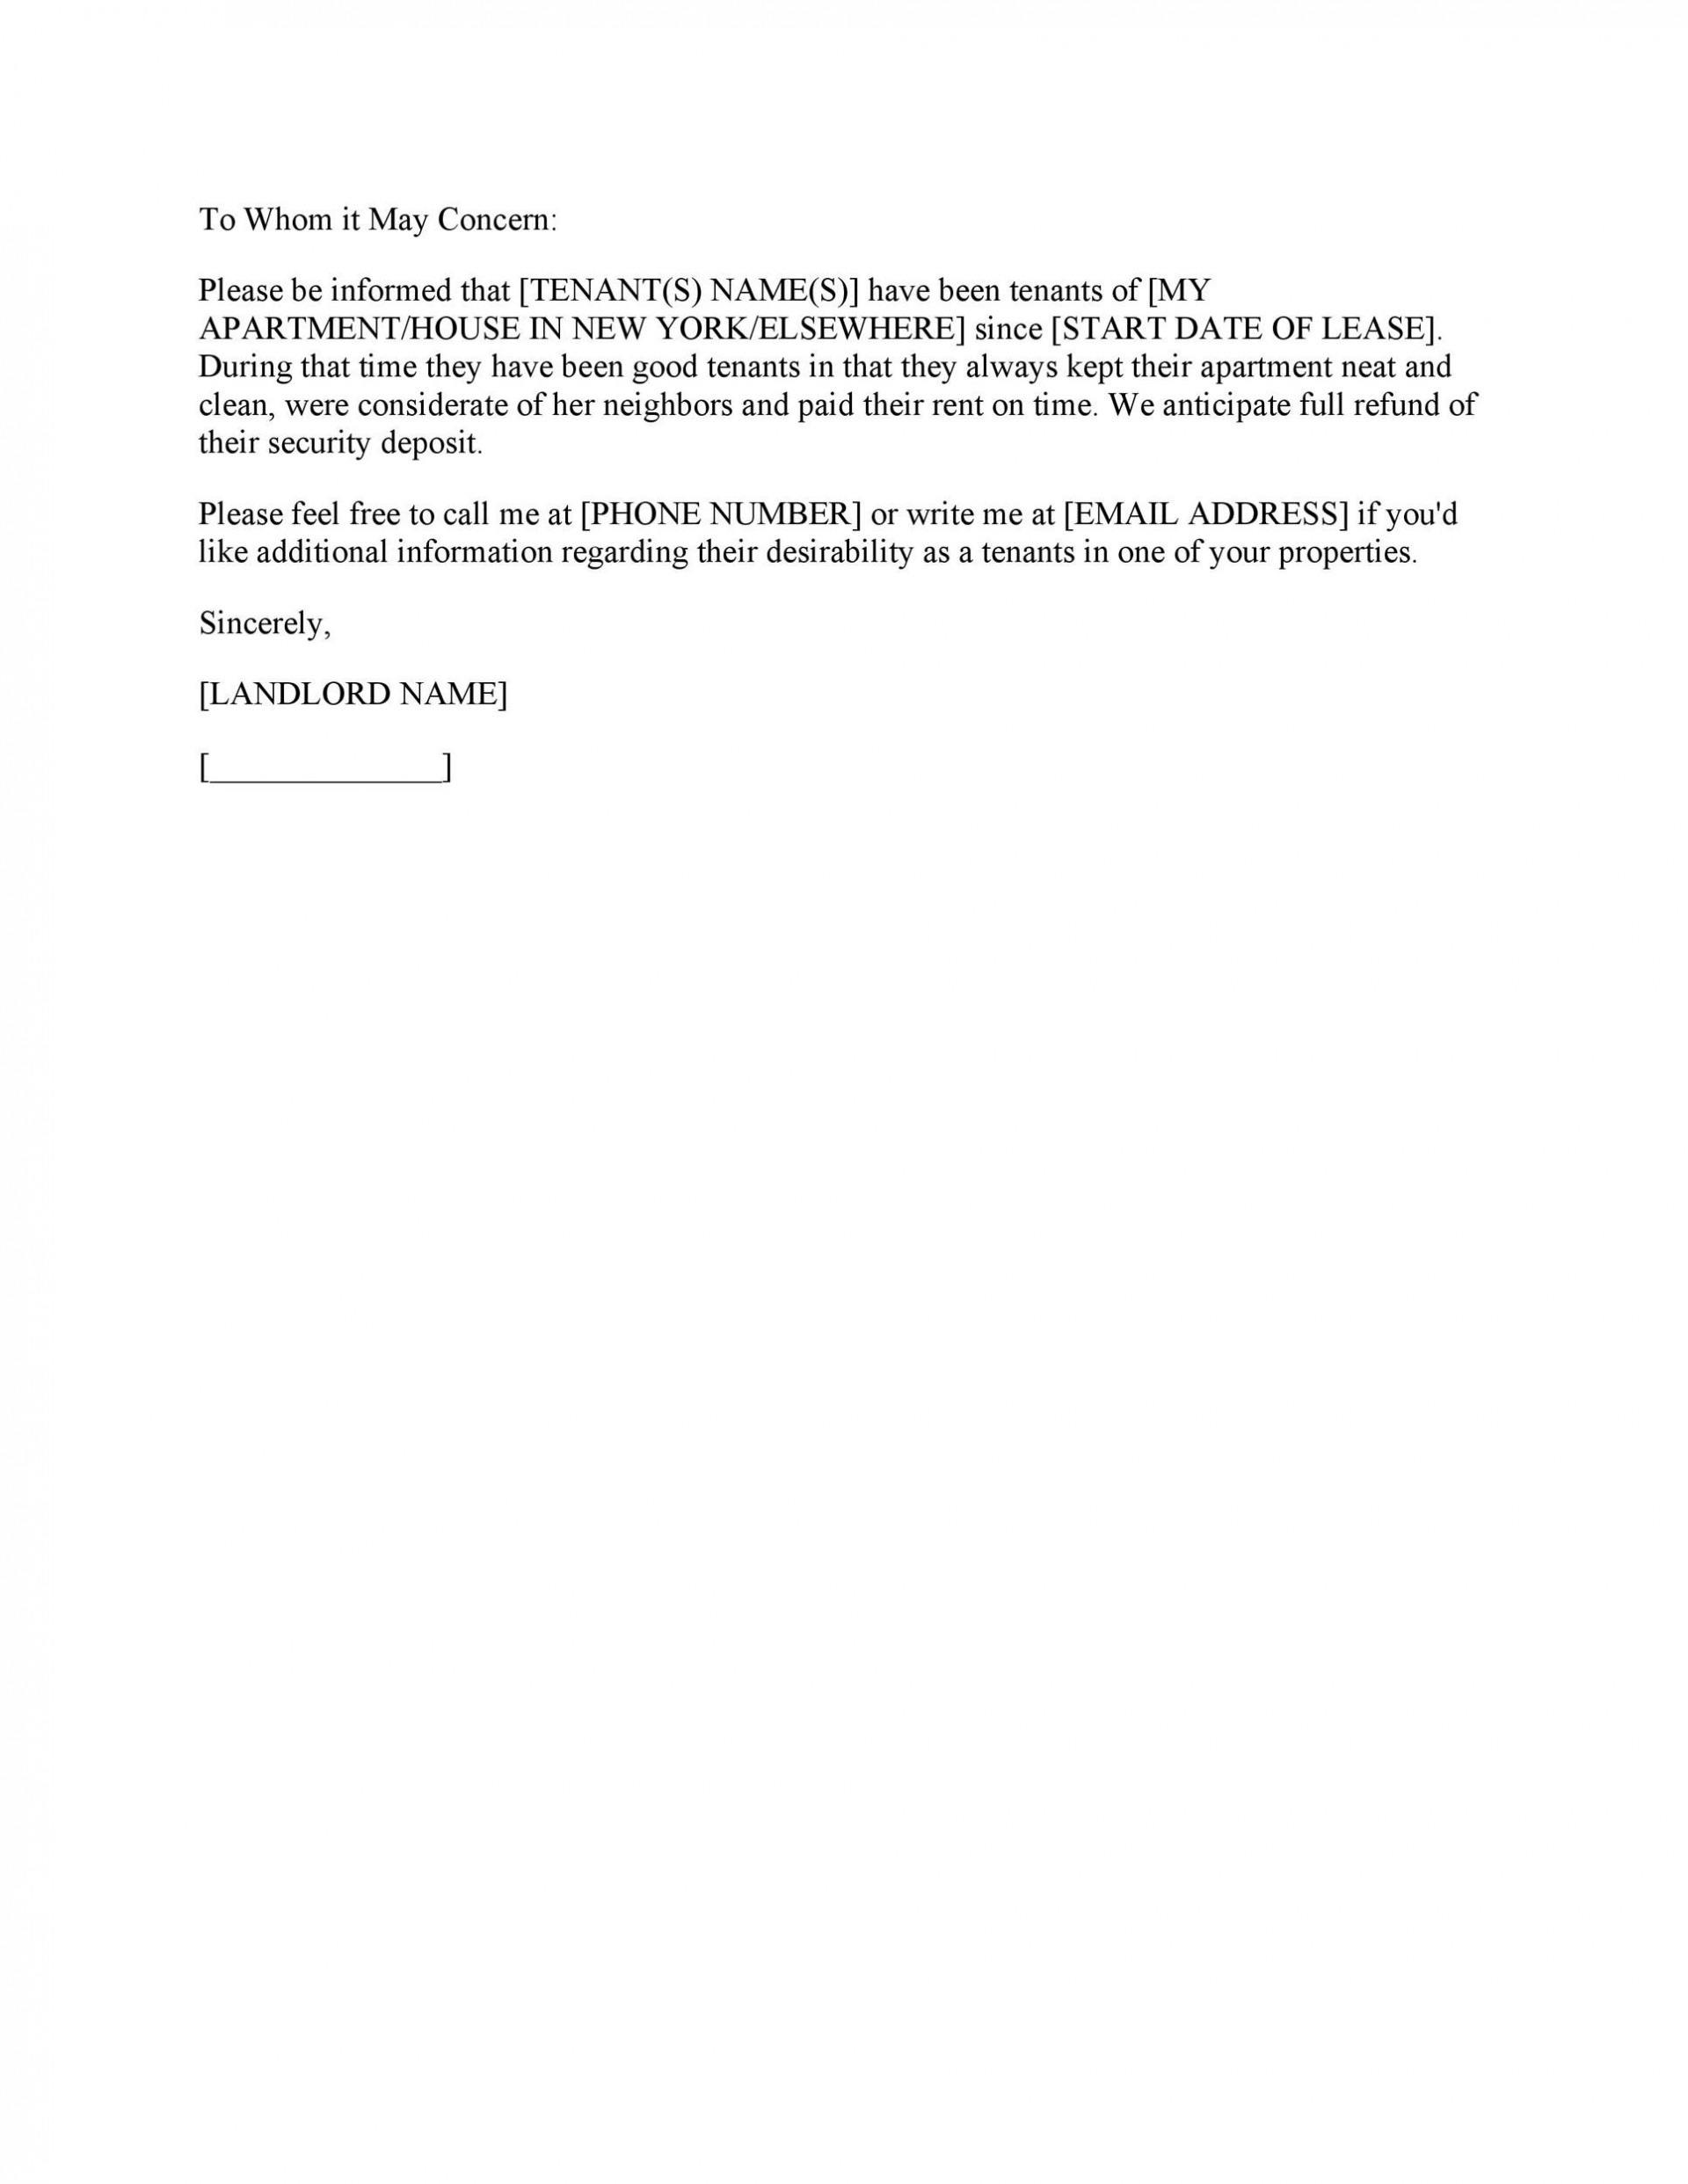 004 Breathtaking Free Reference Letter Template For Landlord High Definition  Rental1920